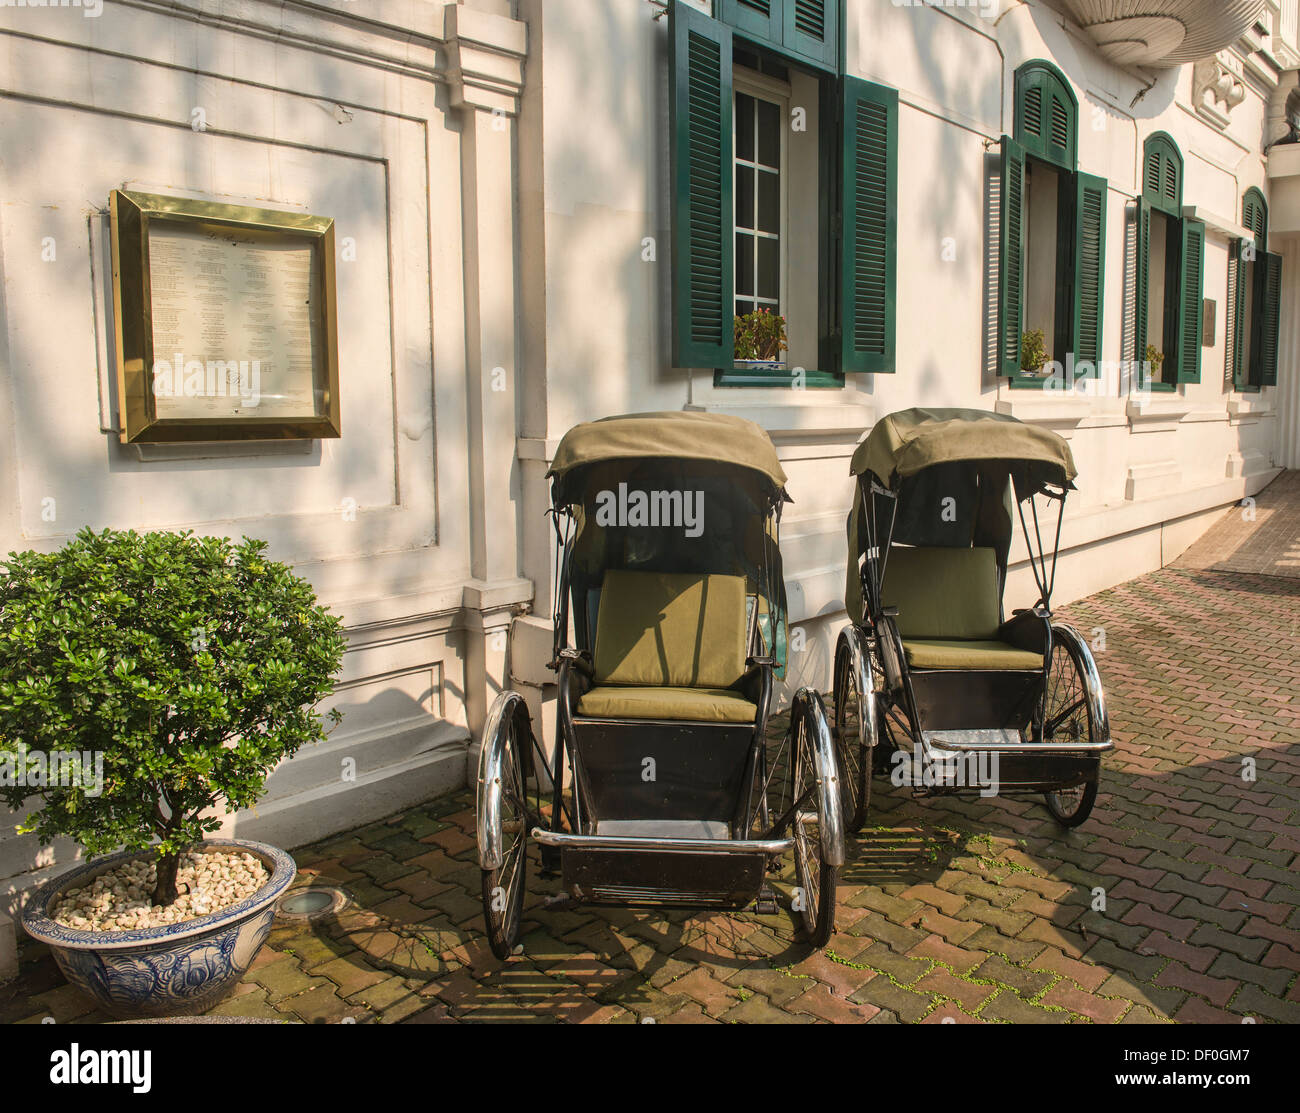 cyclos in front of the historic Metropole Hotel in Hanoi, Vietnam - Stock Image